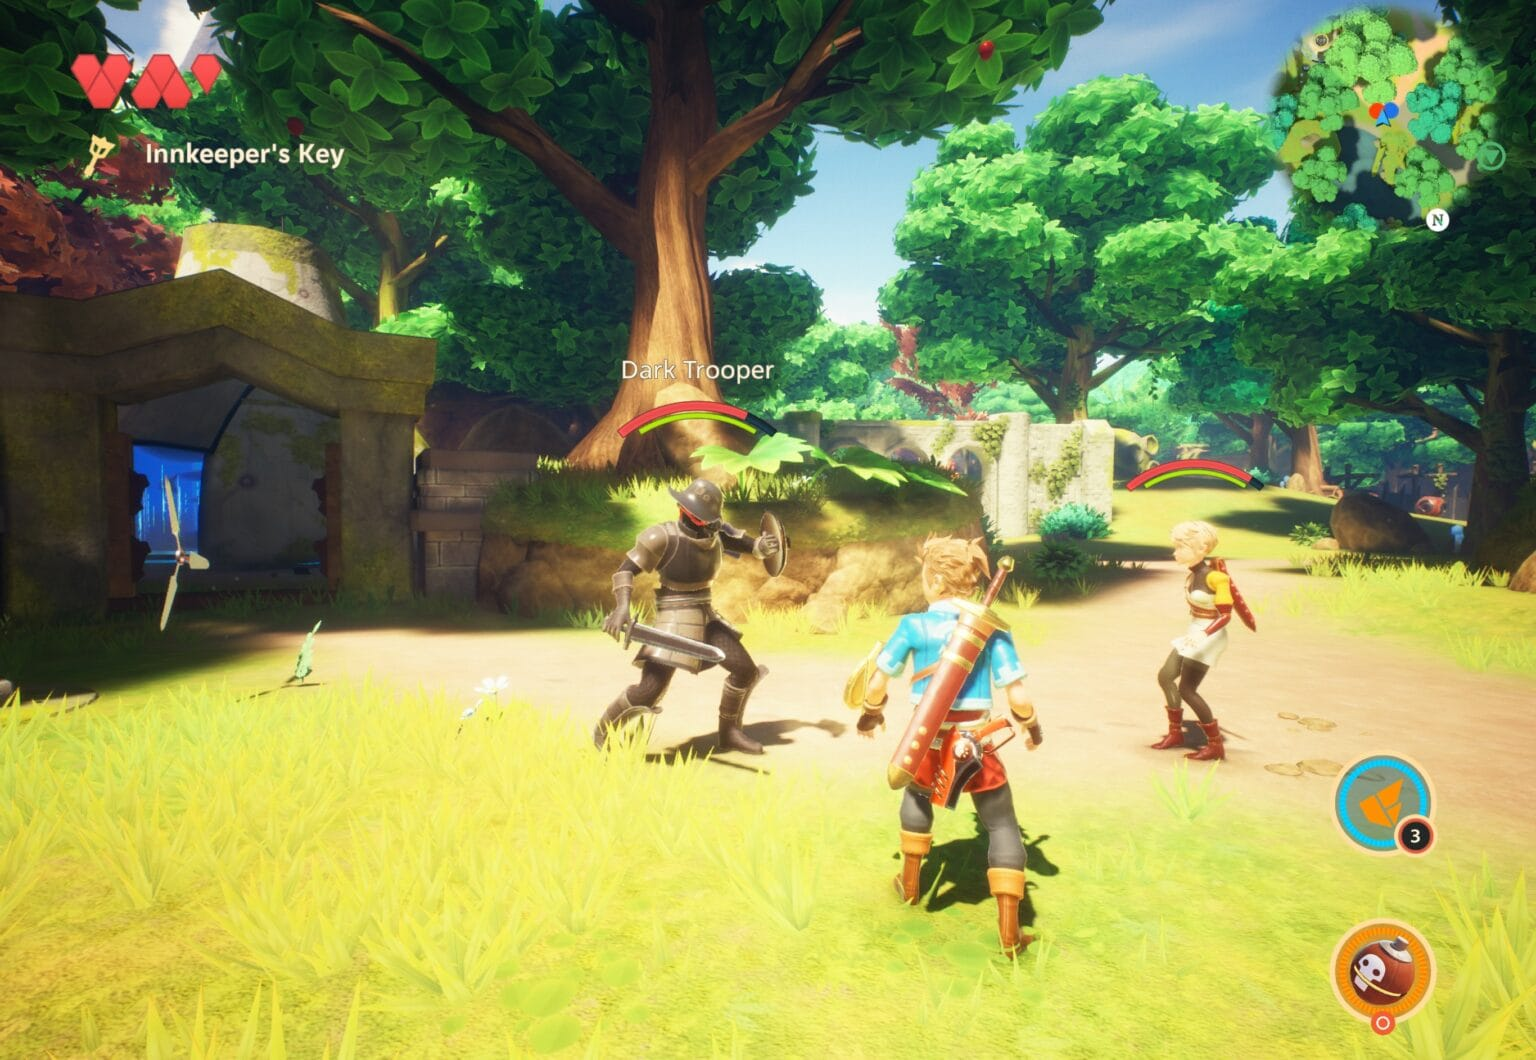 Oceanhorn 2: Knights of the Lost Realm involves battling robots with swords.